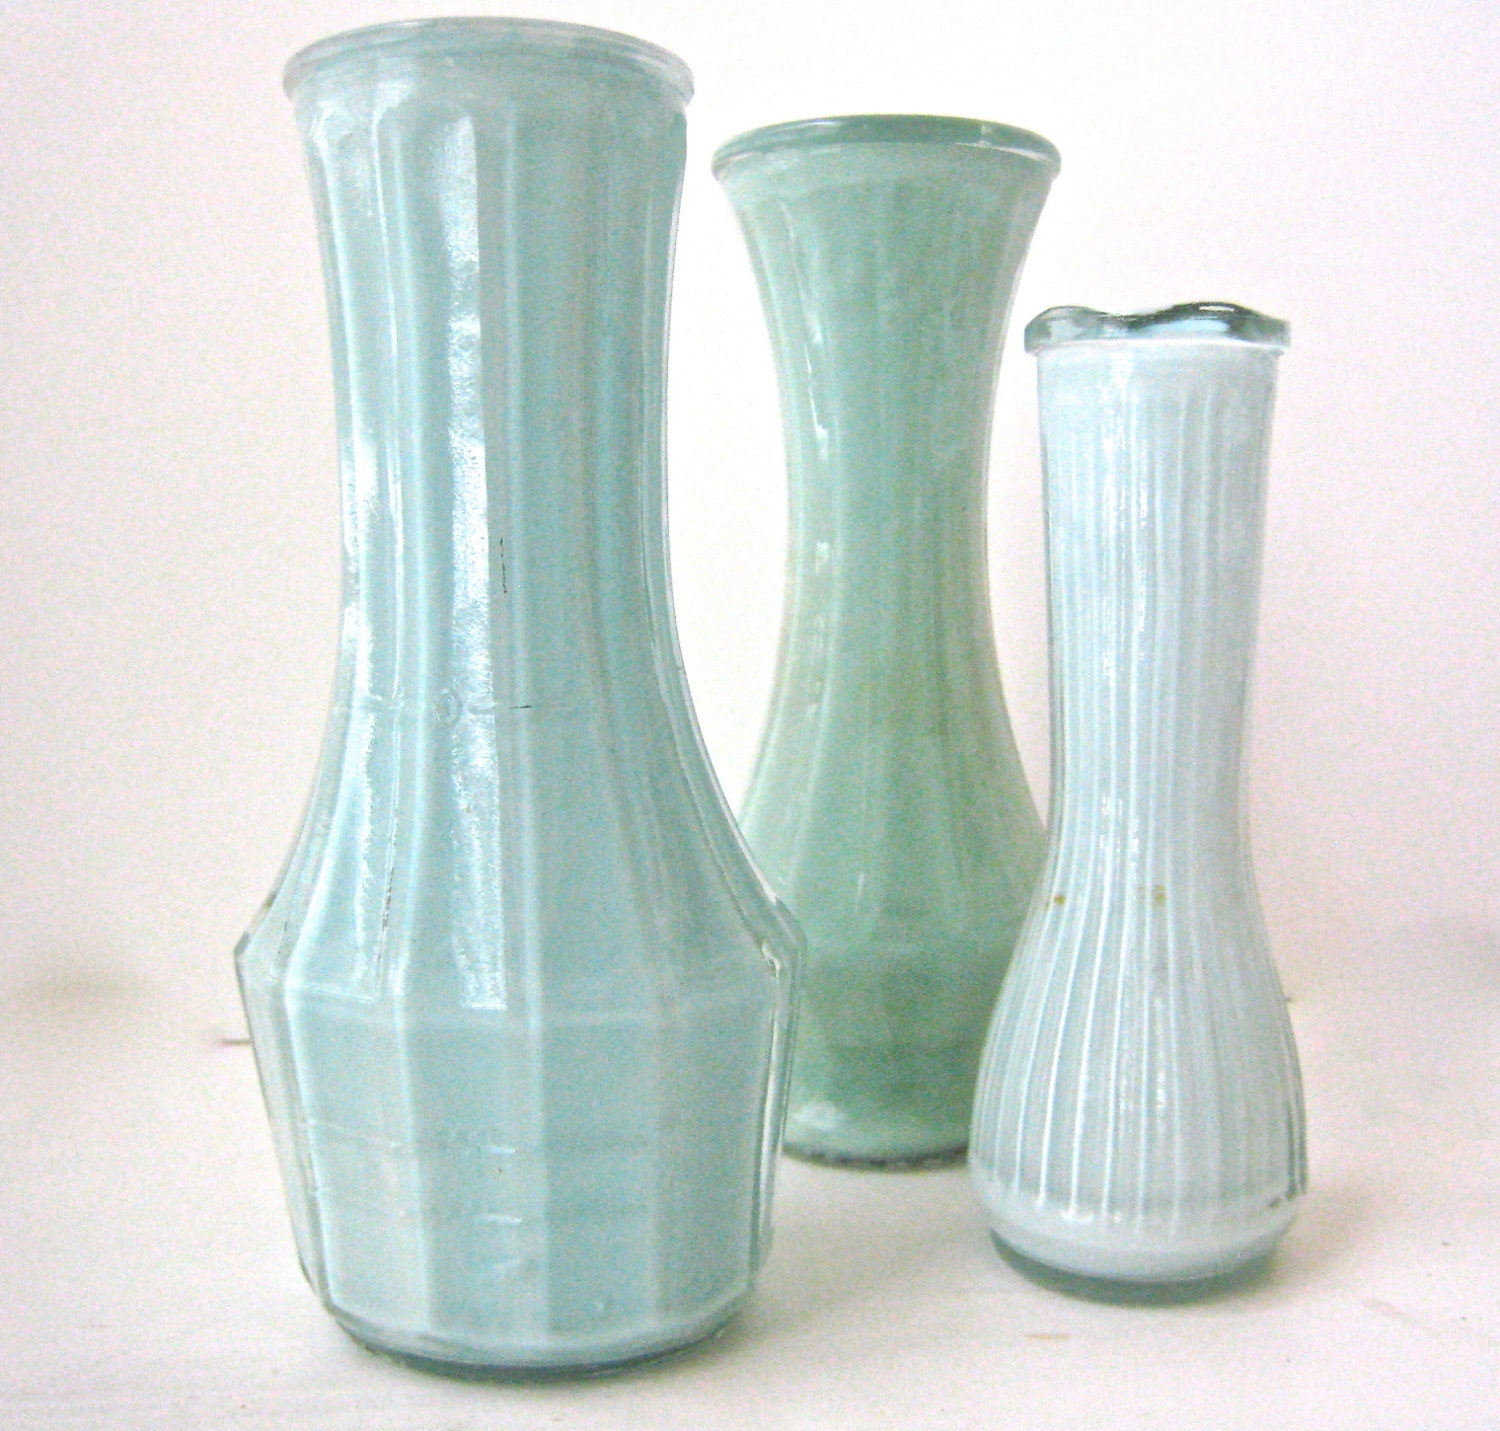 Vintage Aqua Colored Painted Vases - Soft Aqua Shabby Chic Shades of Teal Set of 3 - RetroJunky